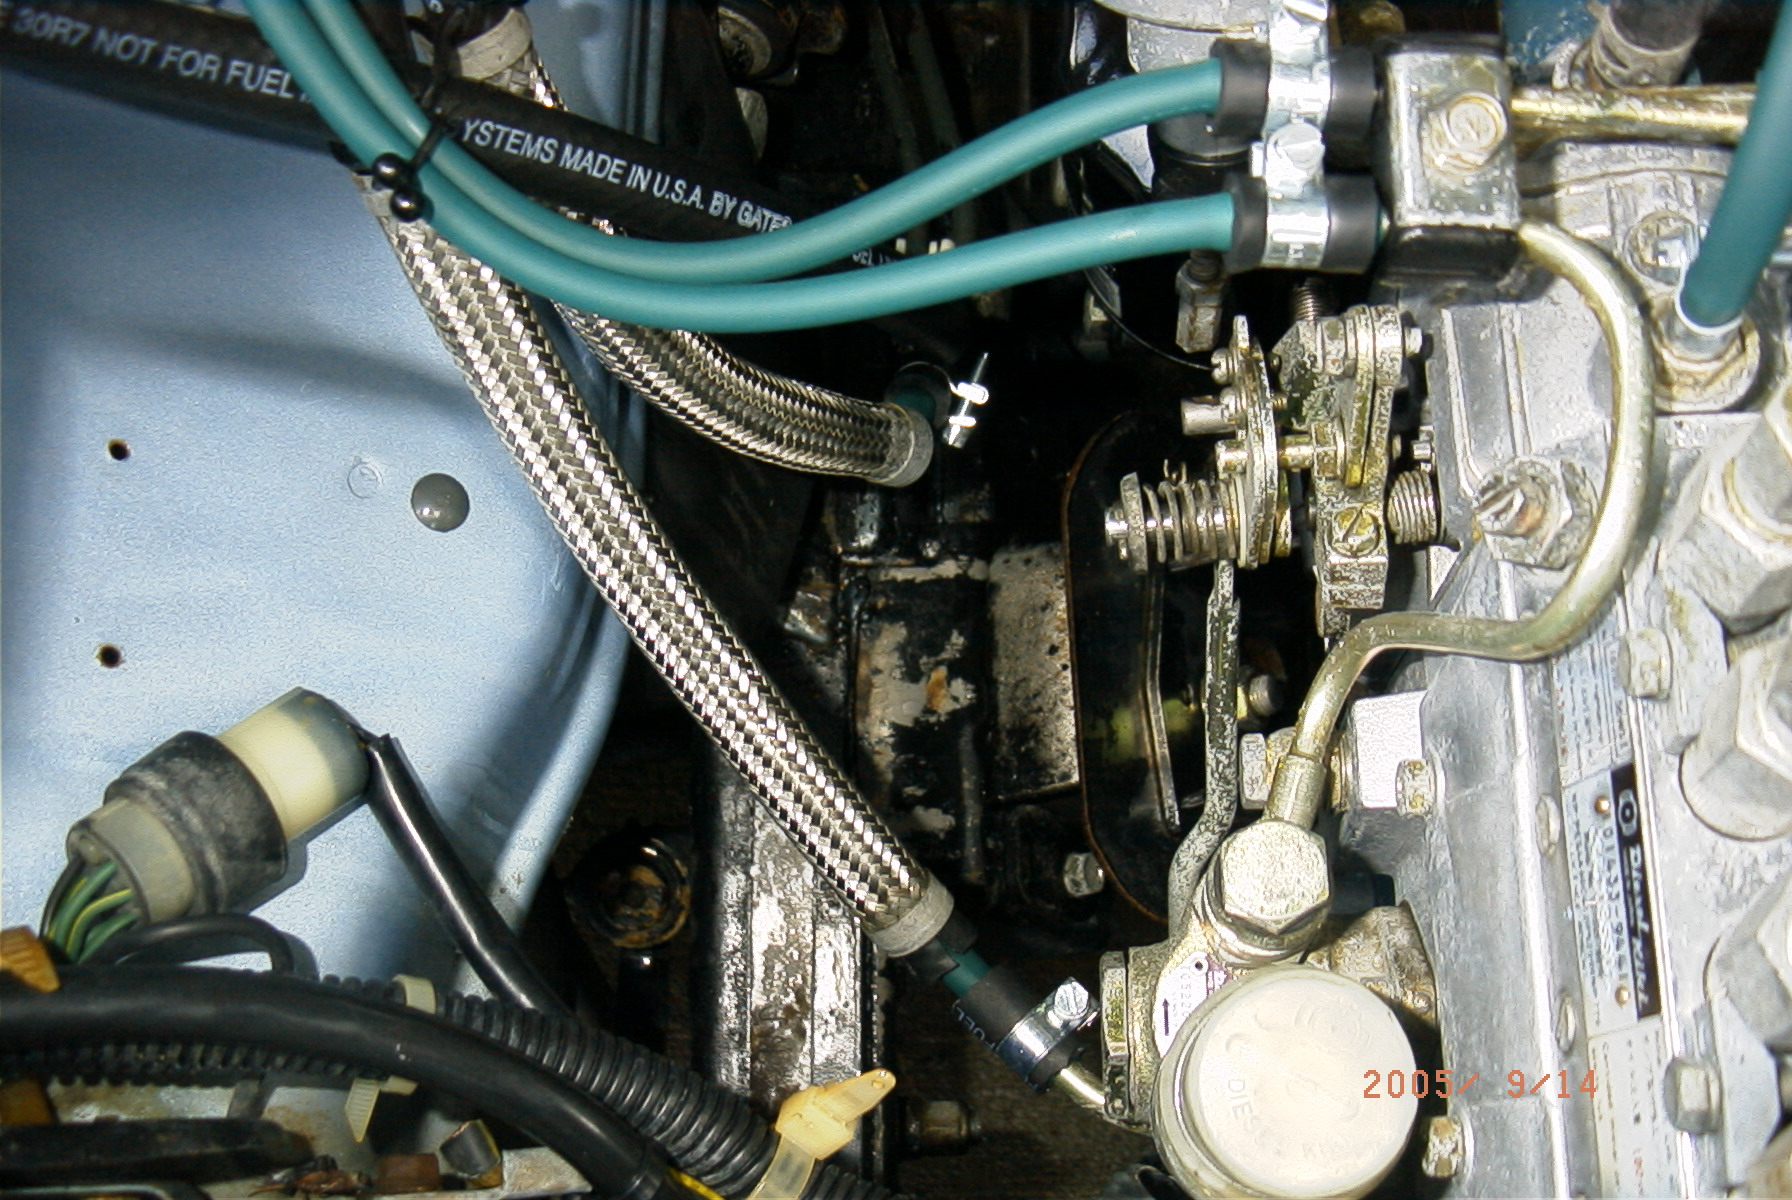 Image ... & NissanDiesel forums u2022 View topic - Biodiesel fuel line replacement ...